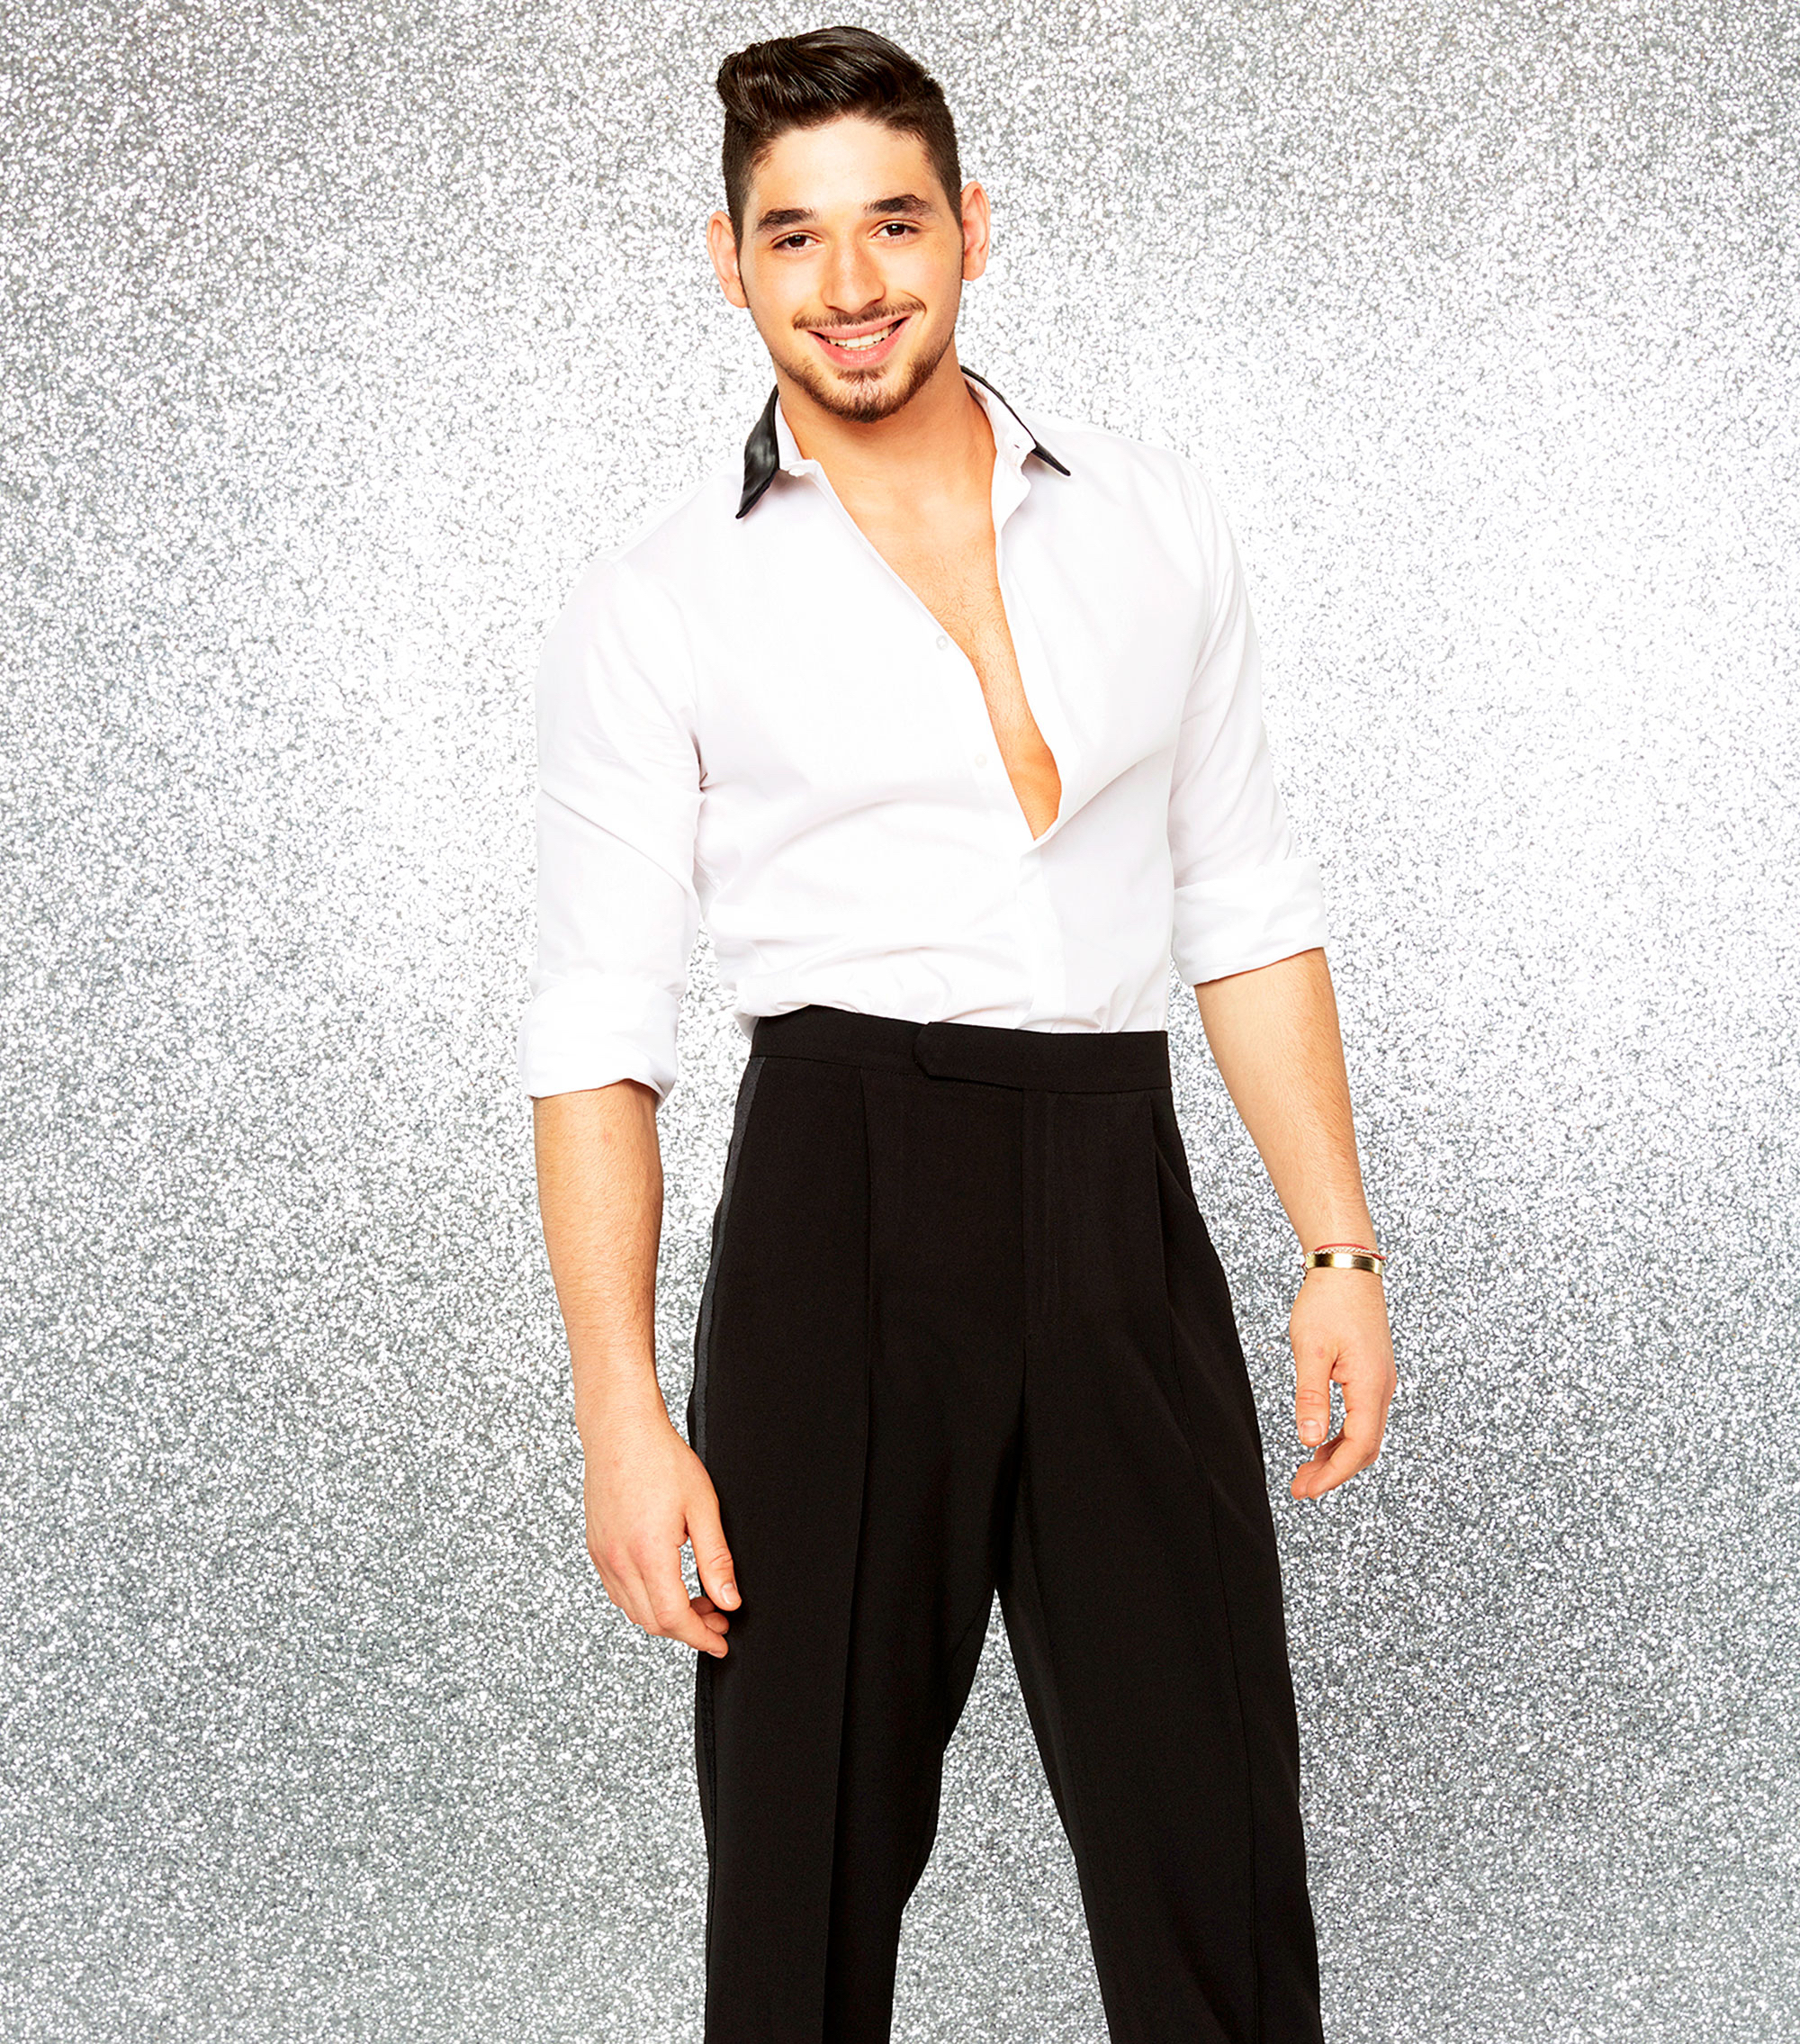 dwts alan in a relationship